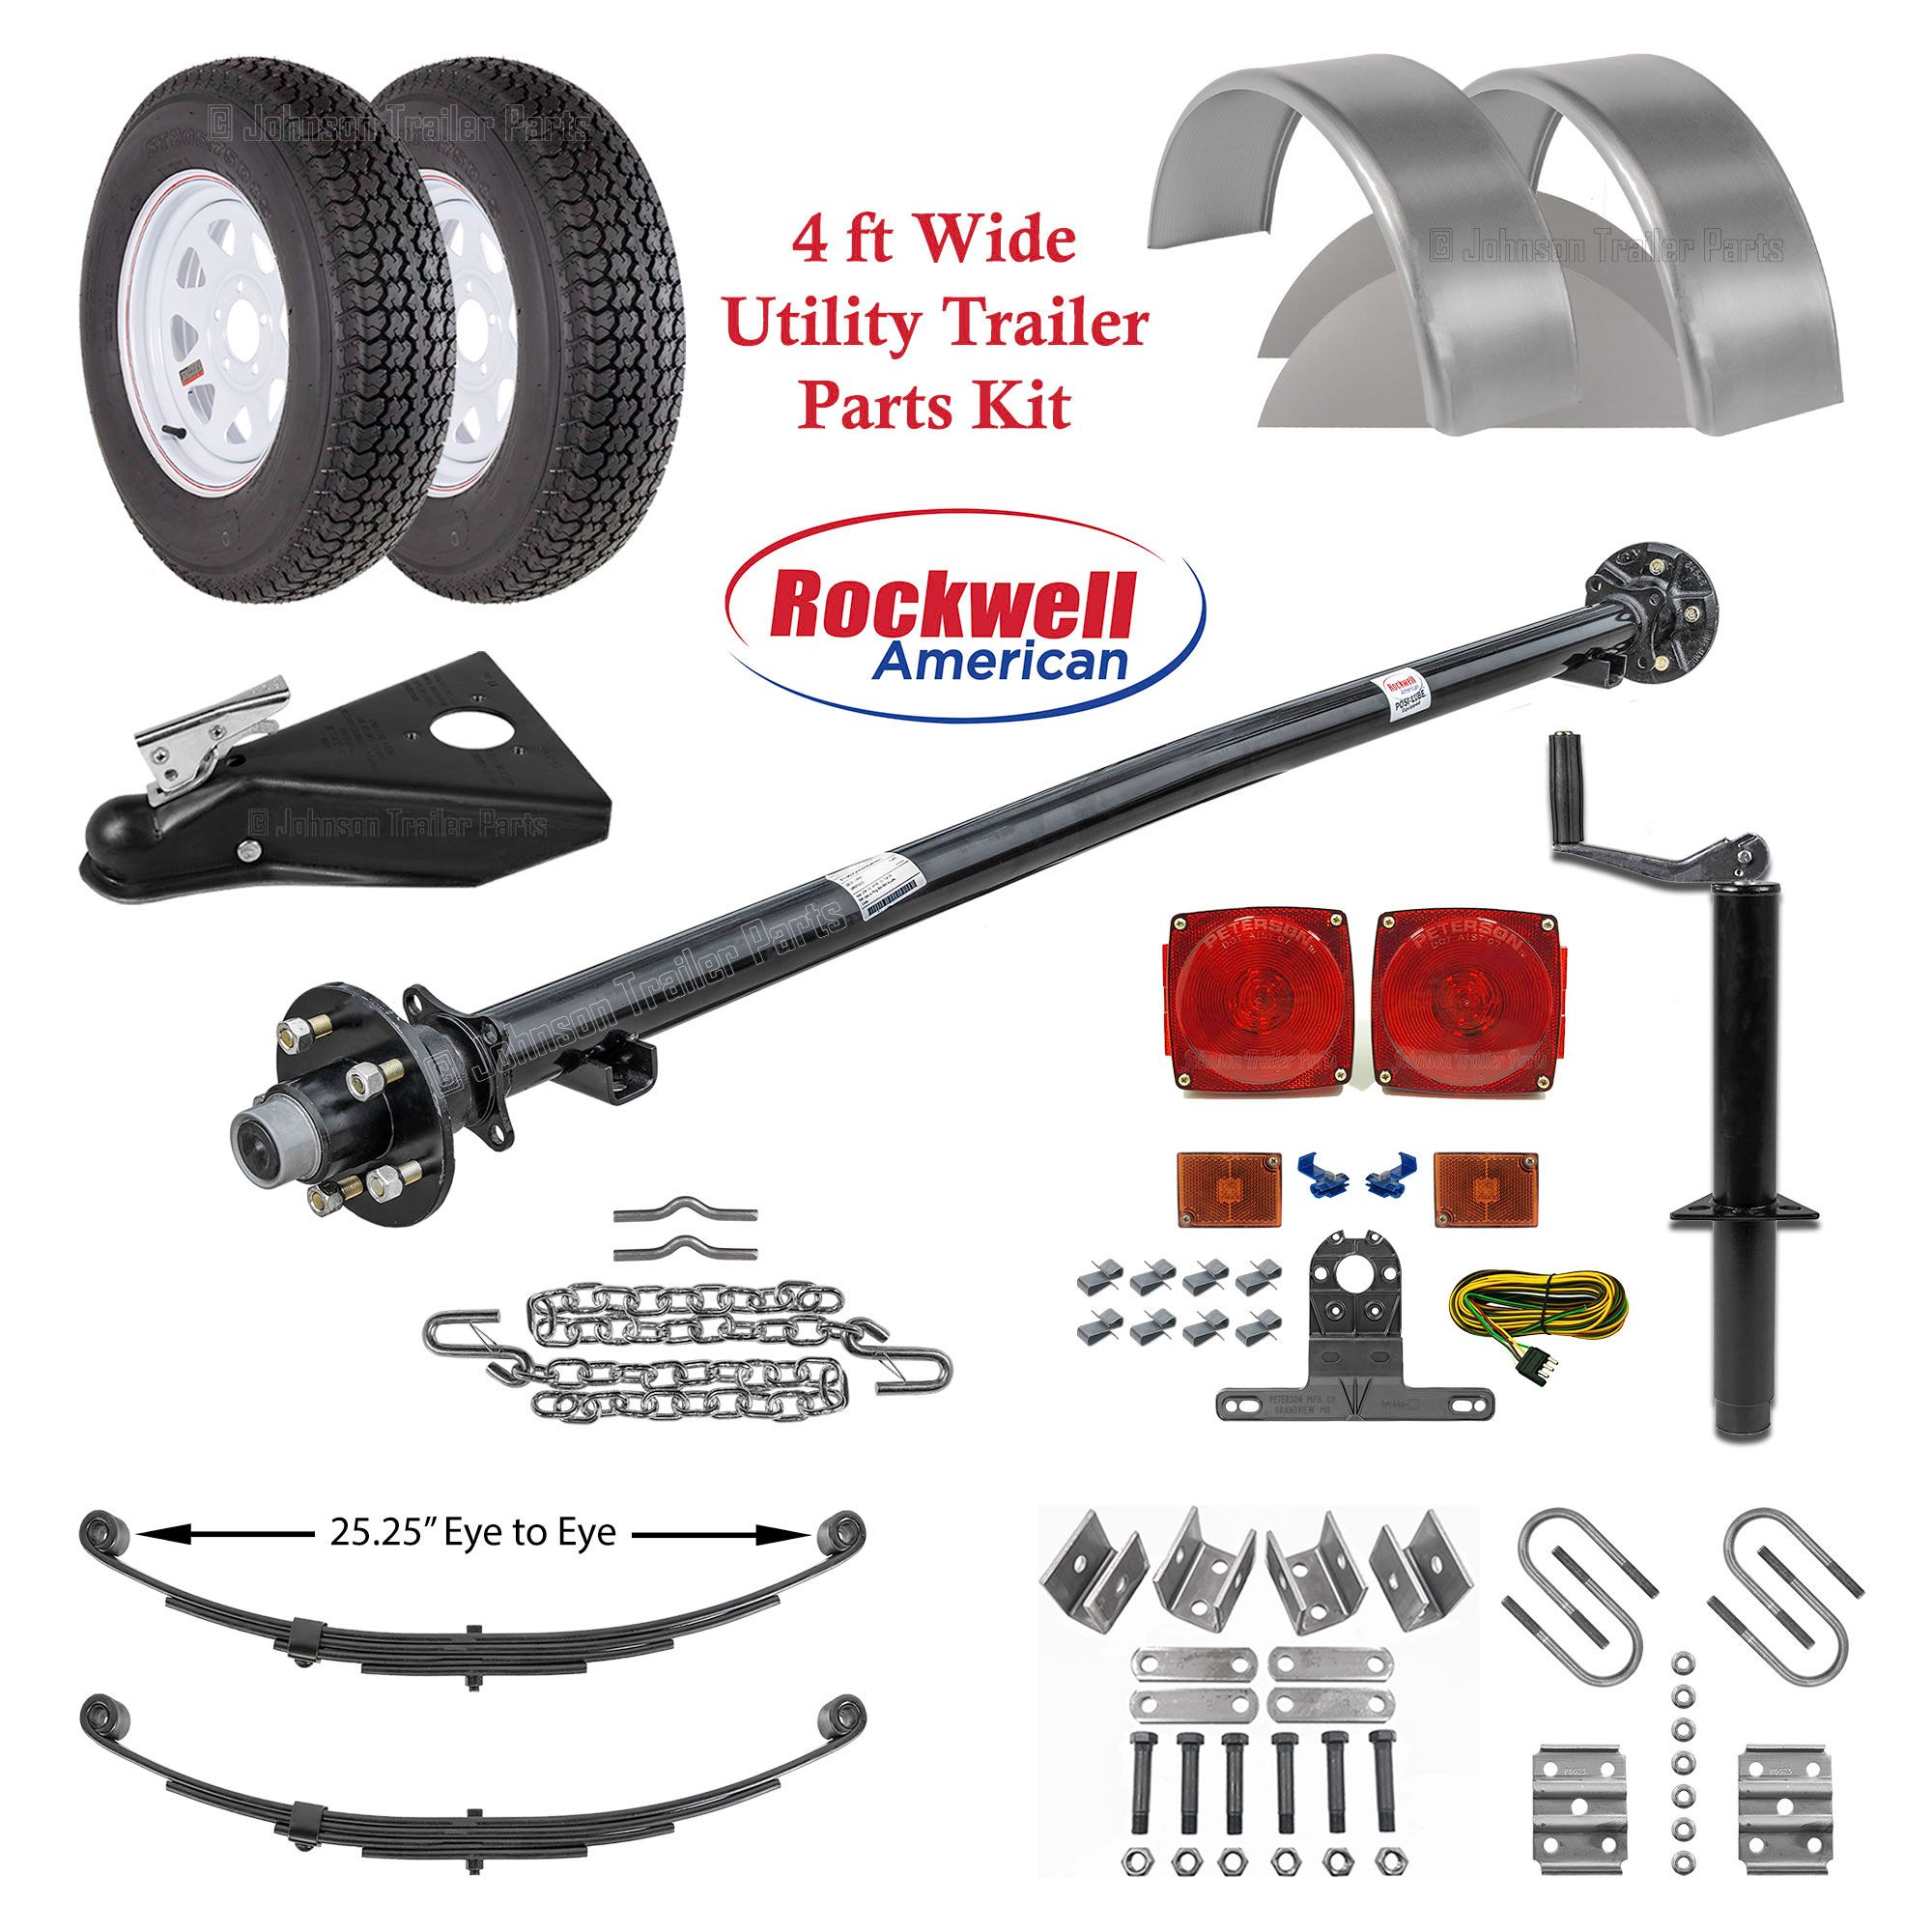 4ft Utility Trailer Parts Kit 3 500 Lb Capacity Utility